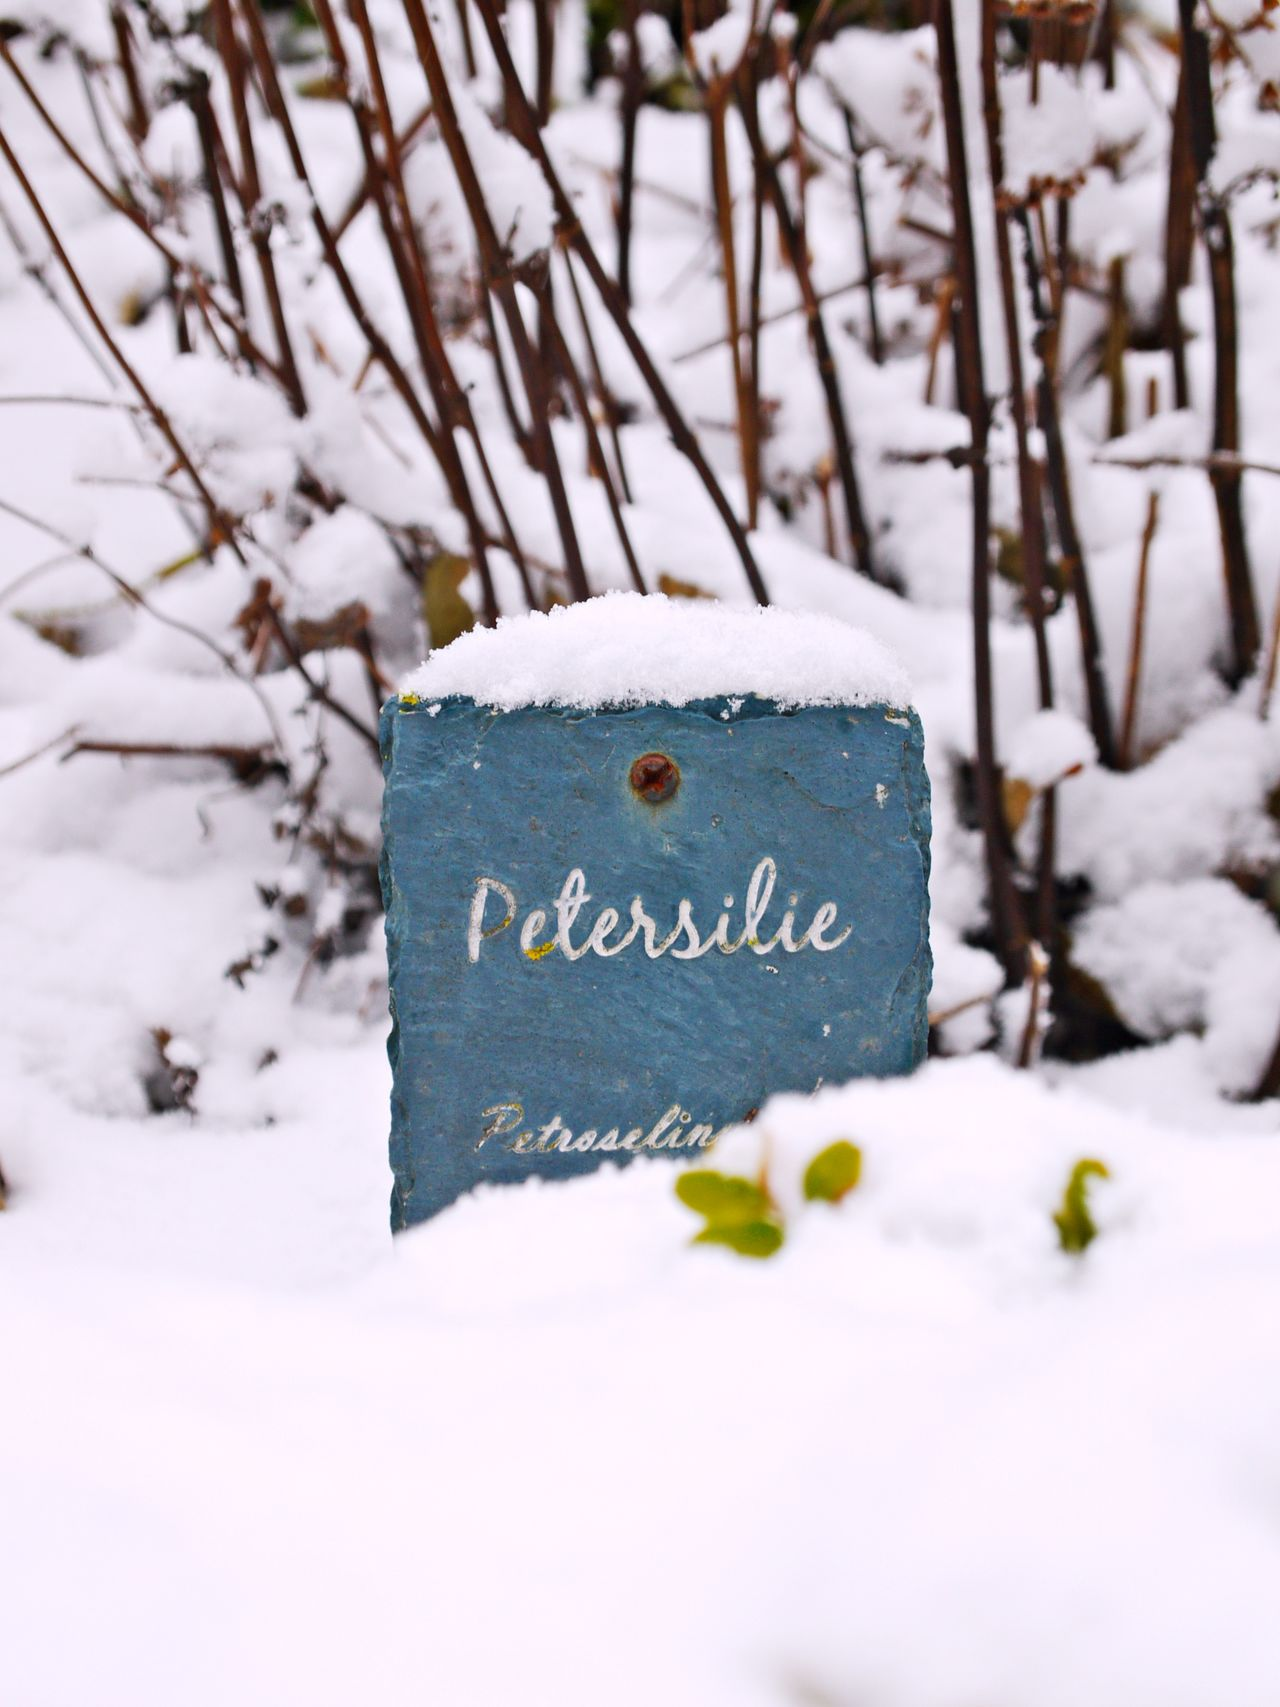 Close-up Cold Temperature Day Focus On Foreground Frozen Herbal Garden Nature No People Outdoors Petersilie Plant Signboard Snow Text Tree Weather Winter